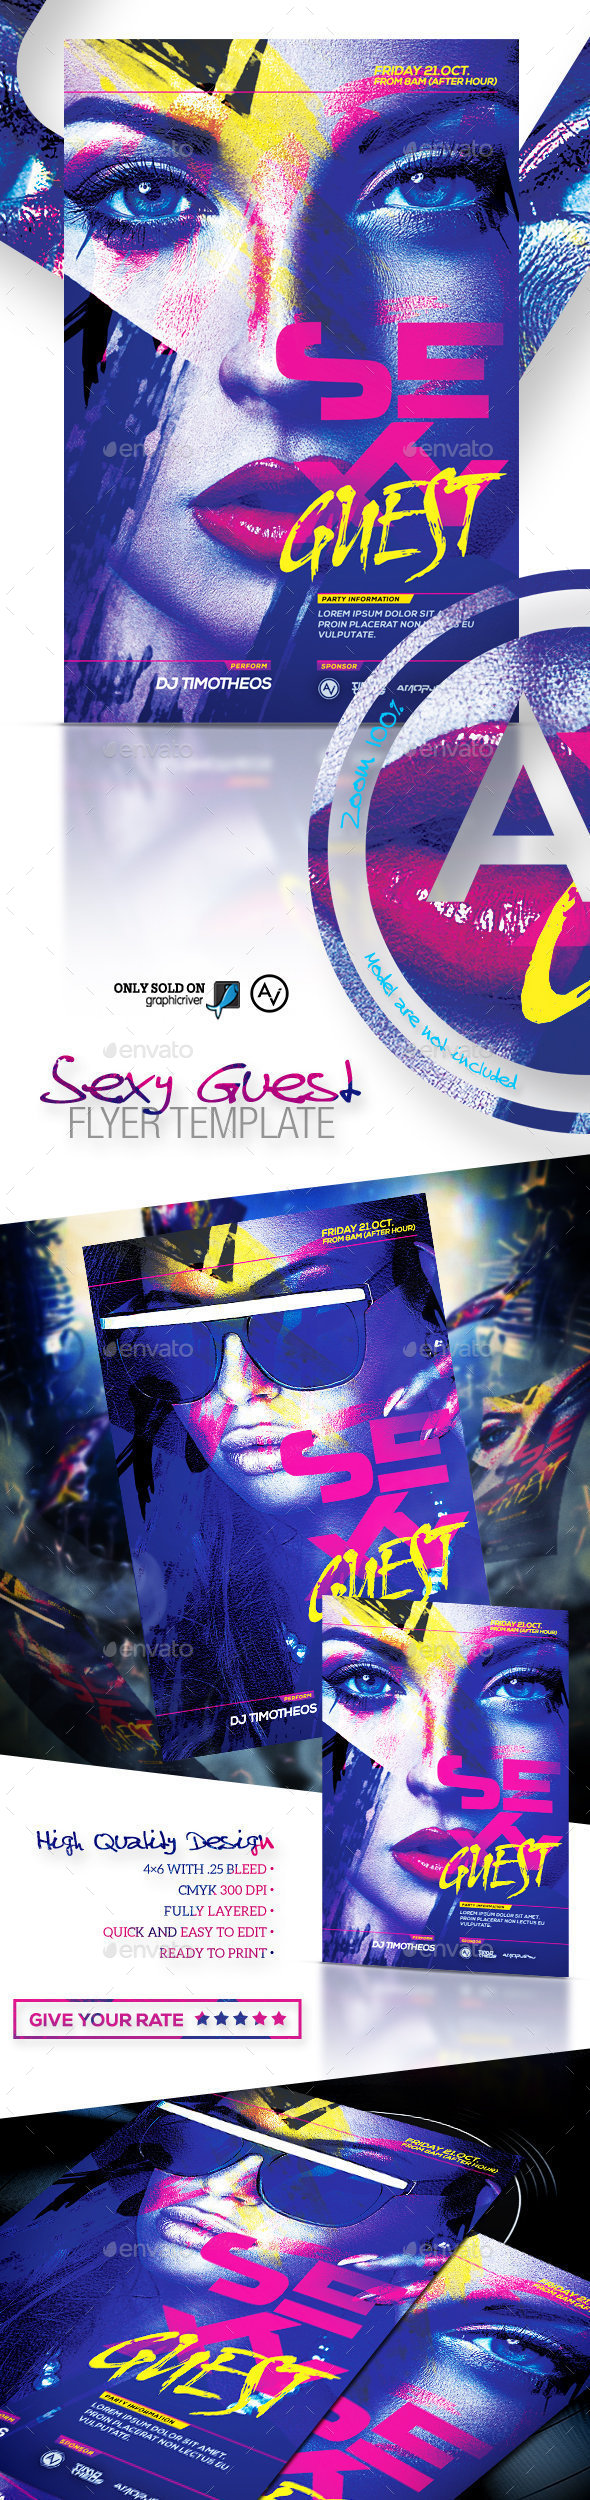 Sexy Guest Flyer Template - Clubs & Parties Events